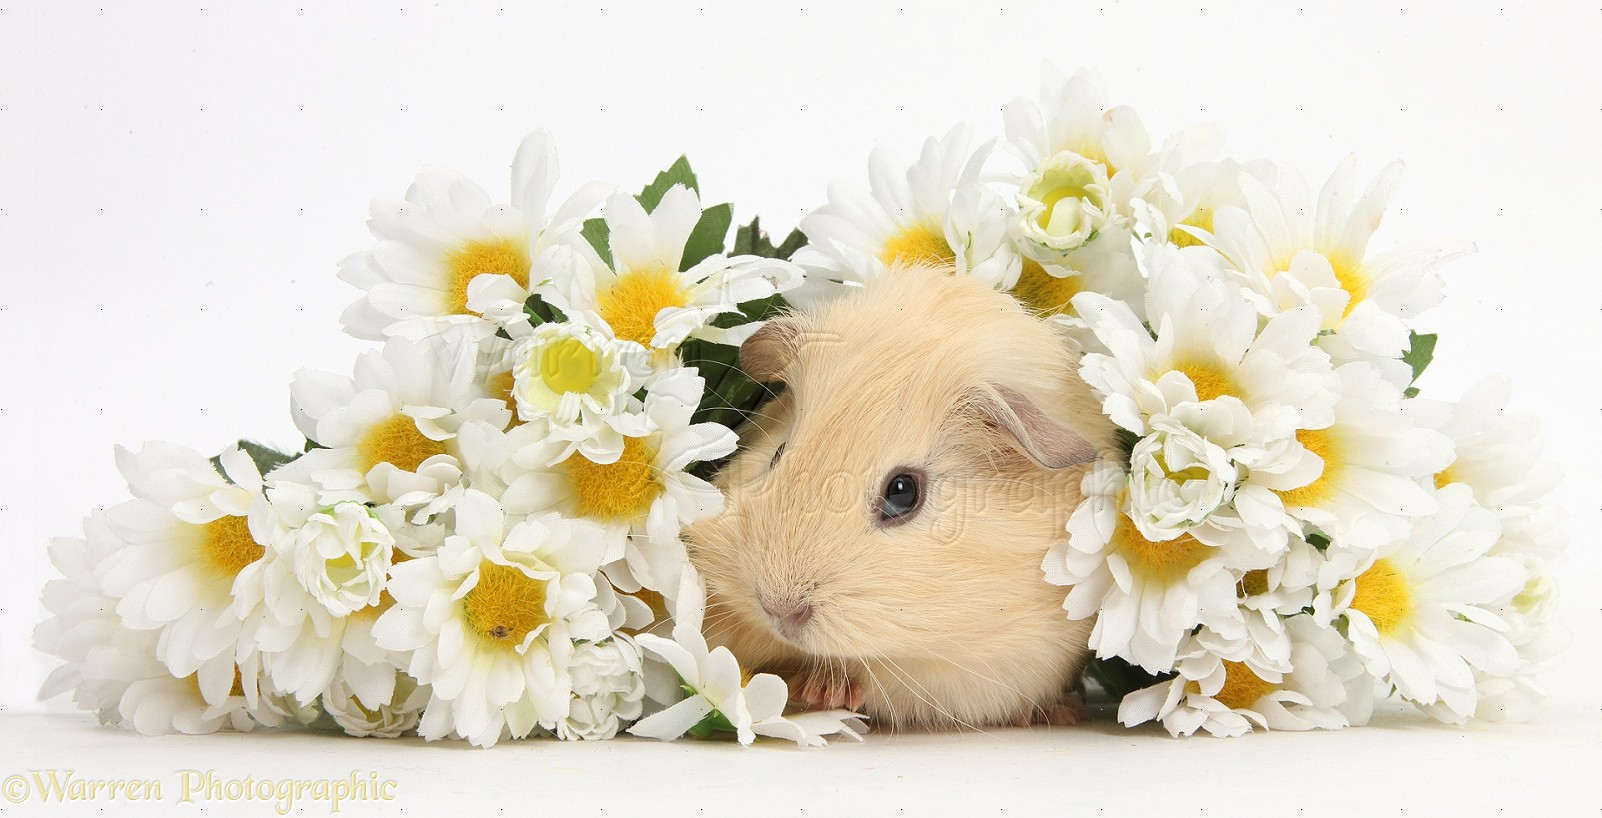 Cute baby Guinea pig hiding in a bunch of daisy flowers ...